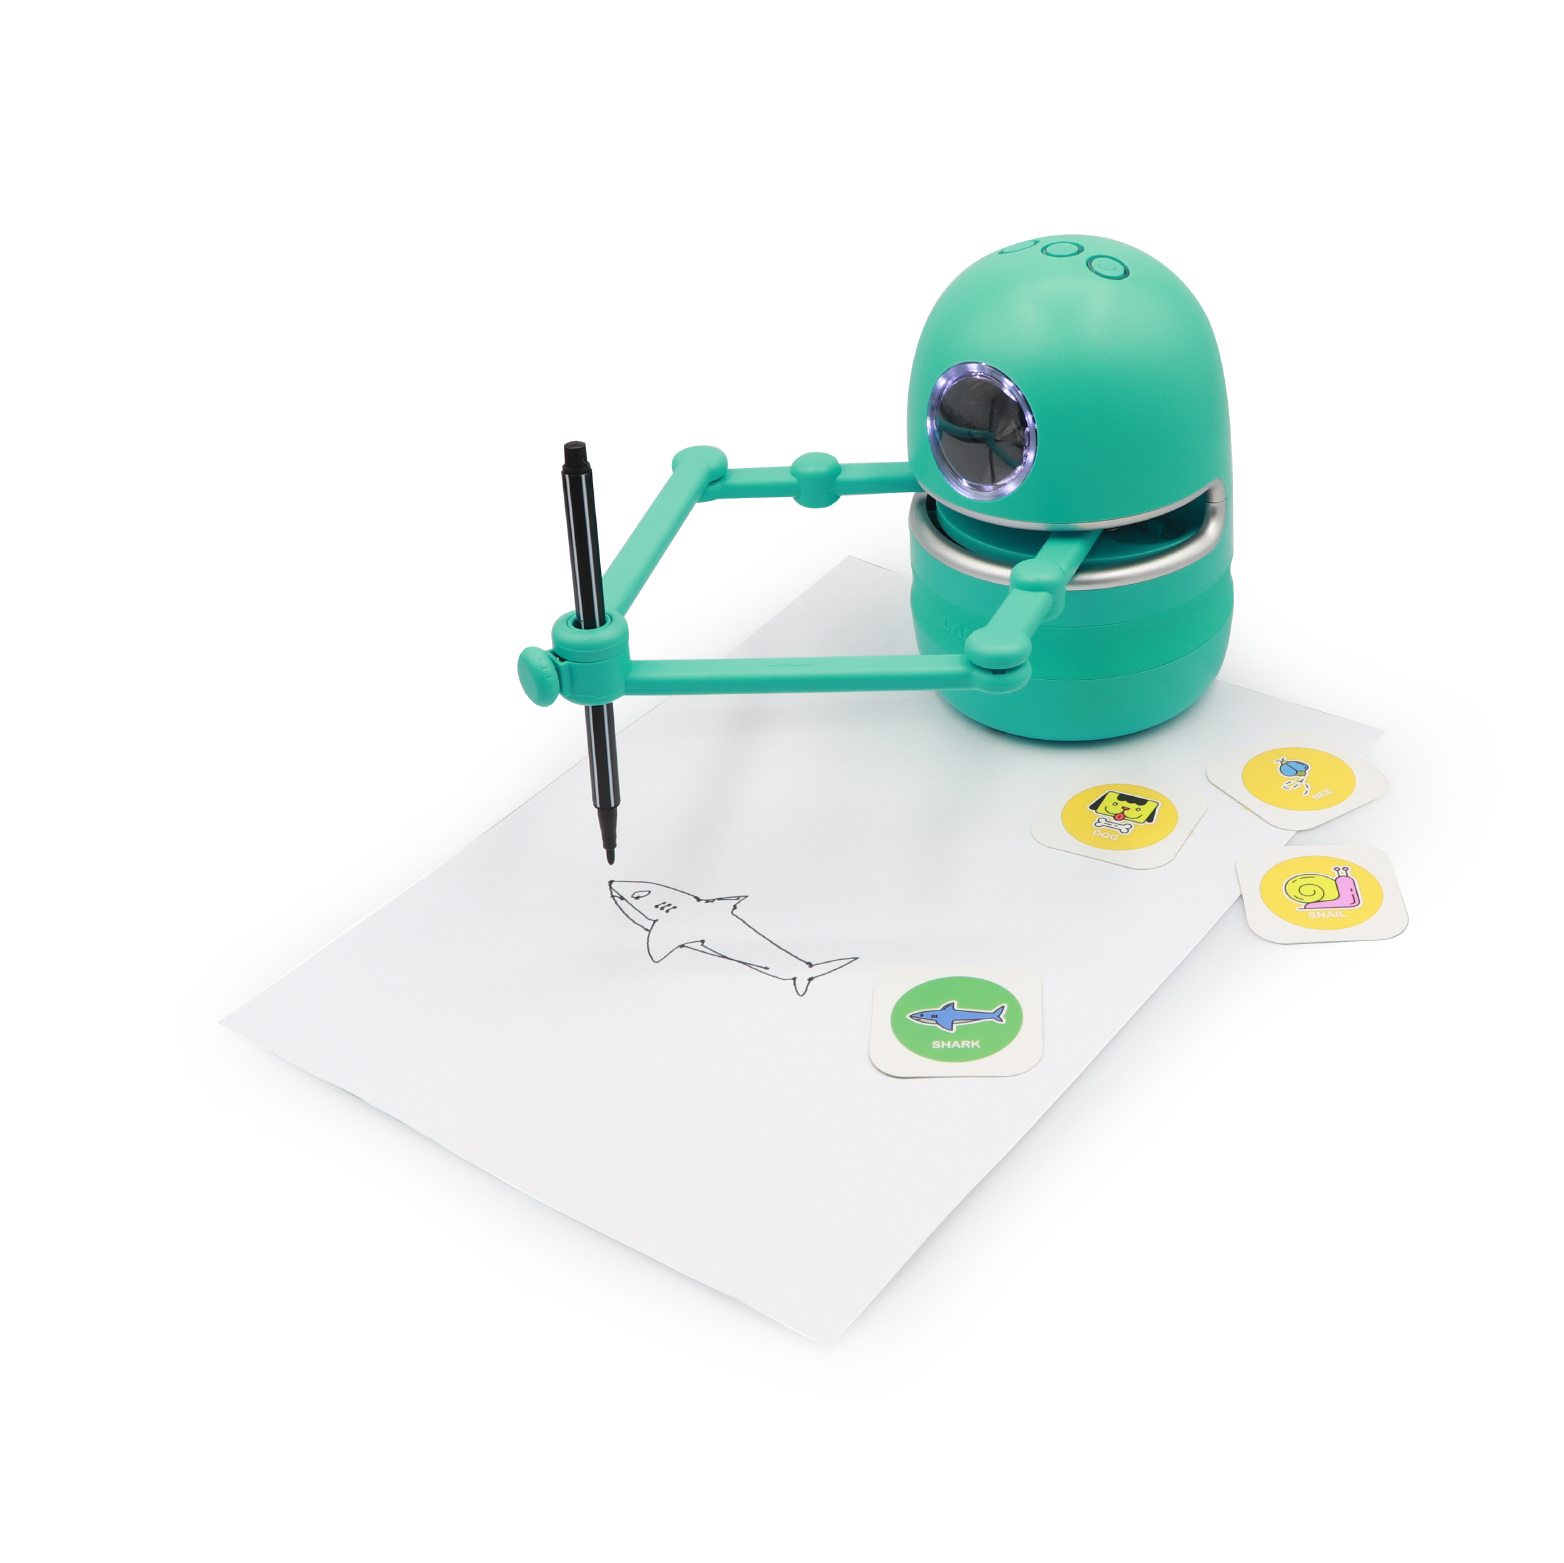 robot toy for kids